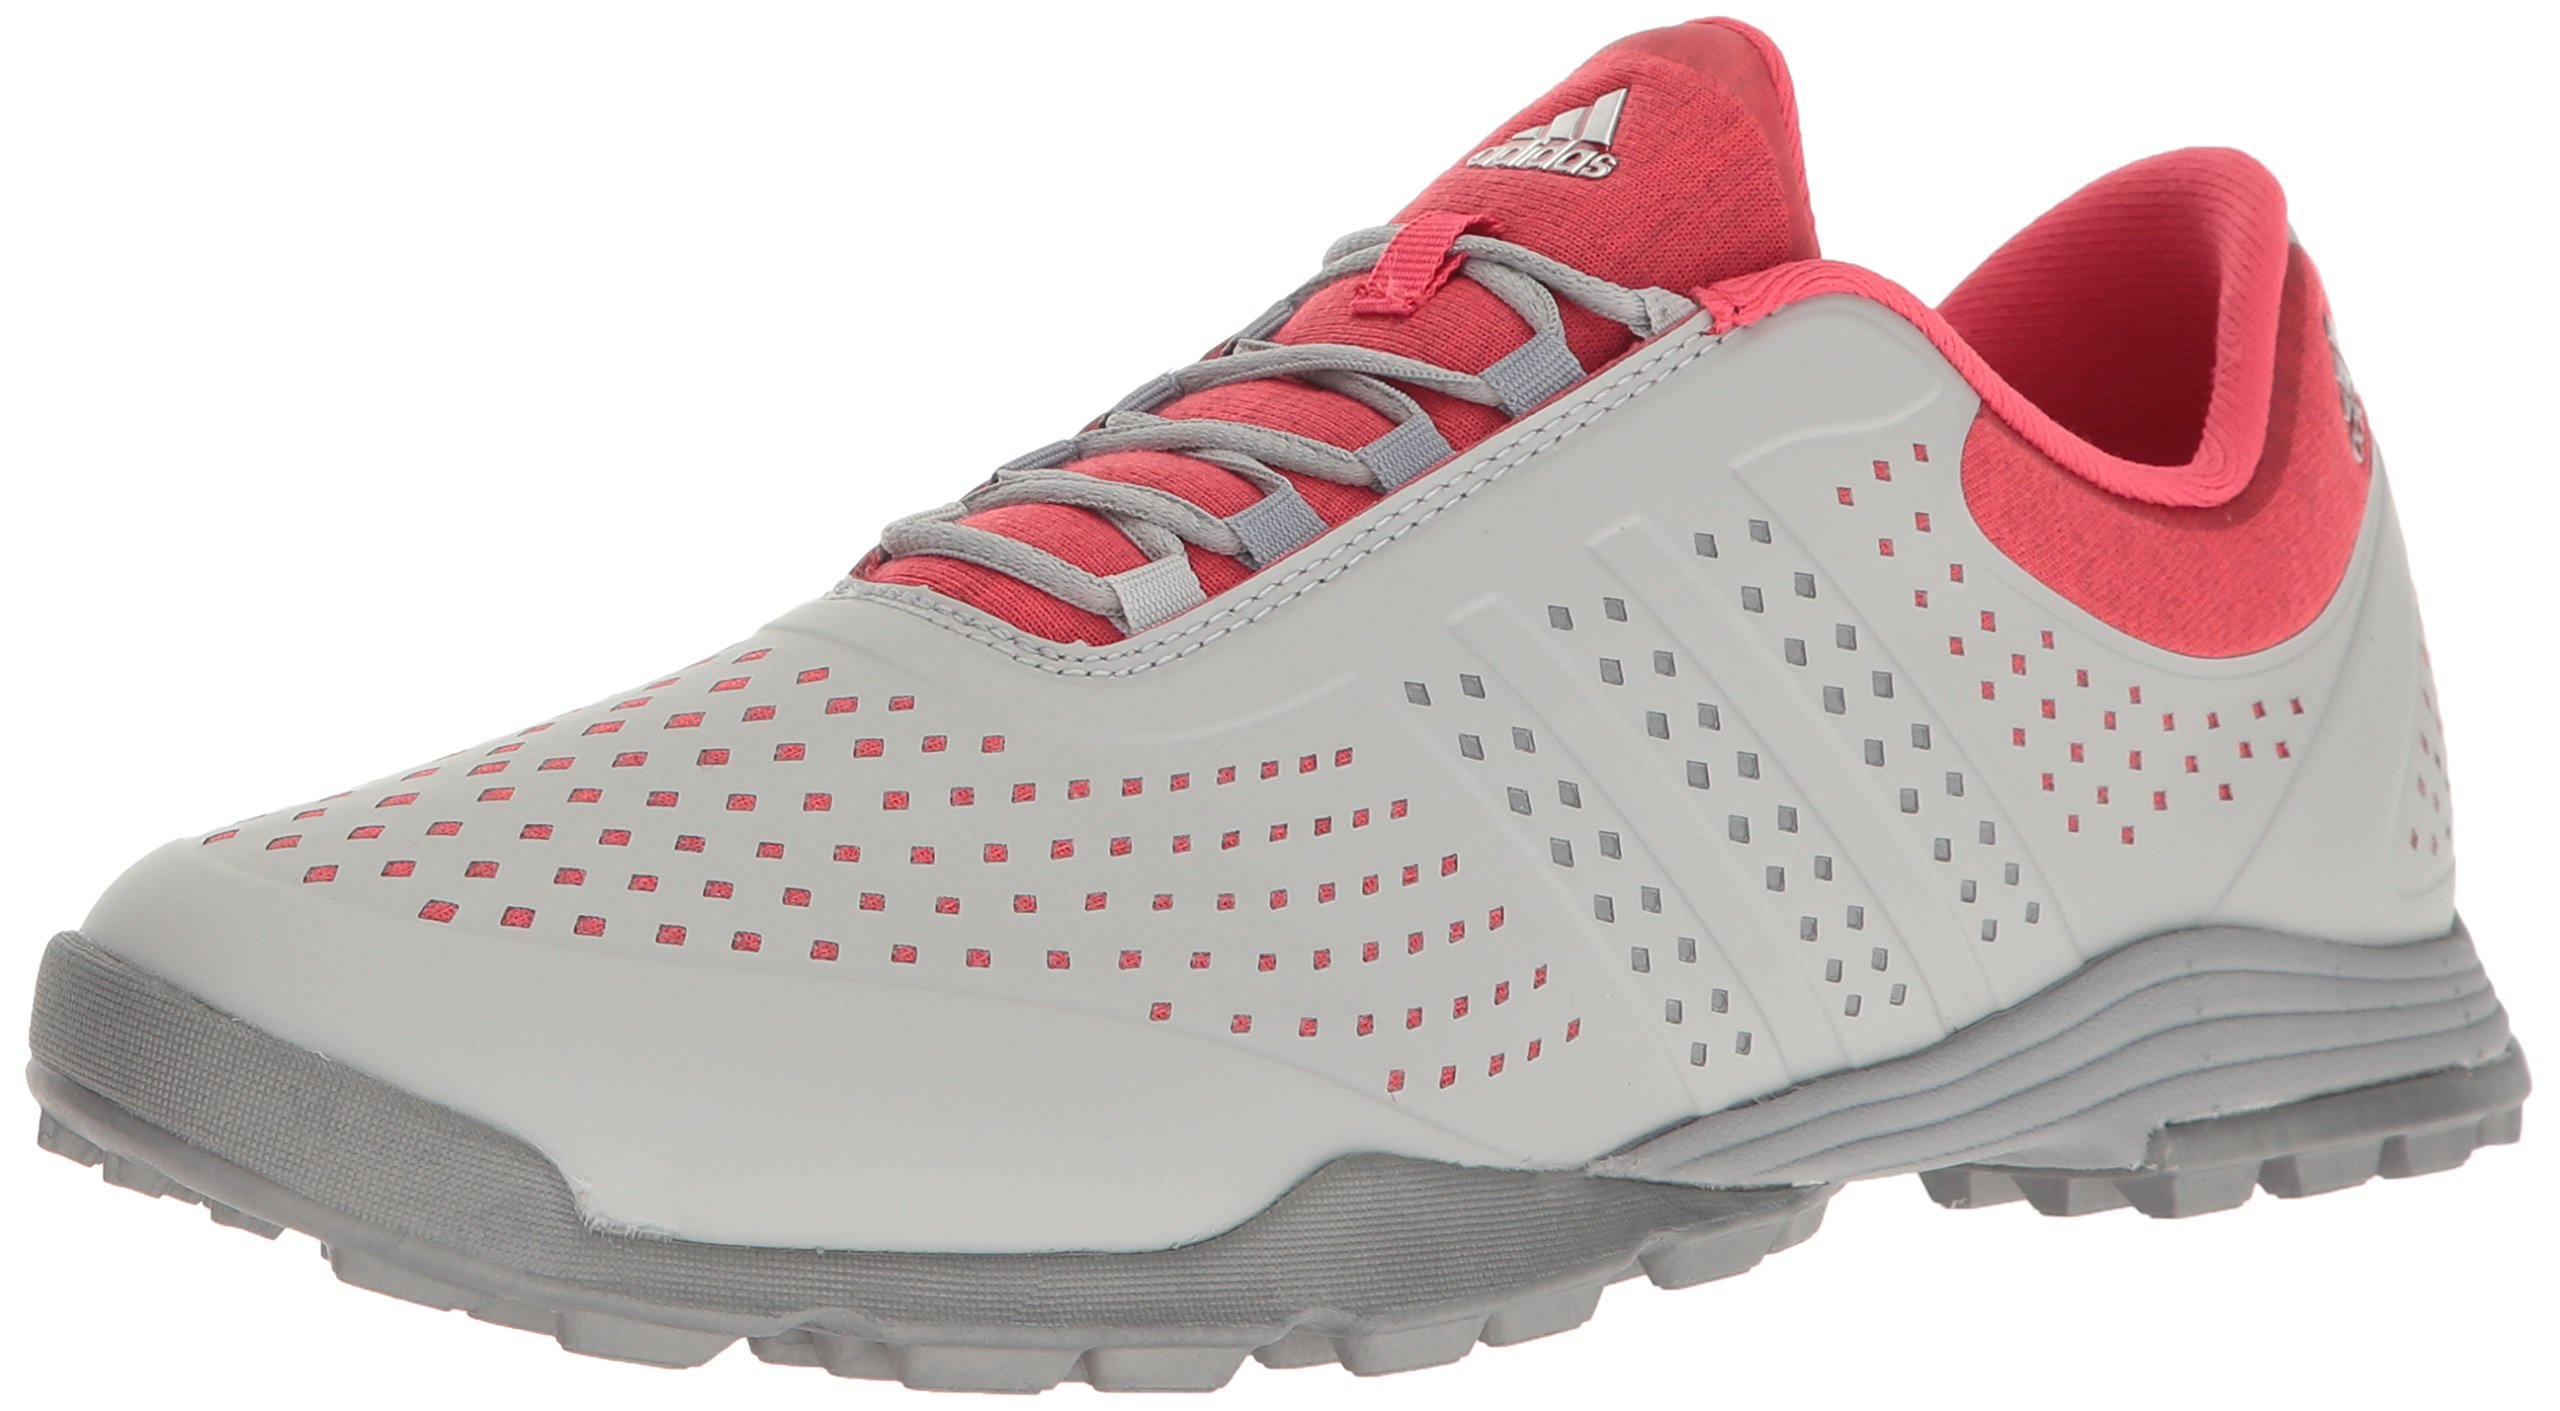 adidas Women's Adipure Sport Golf Shoe, Core Pink, 7 M US by adidas